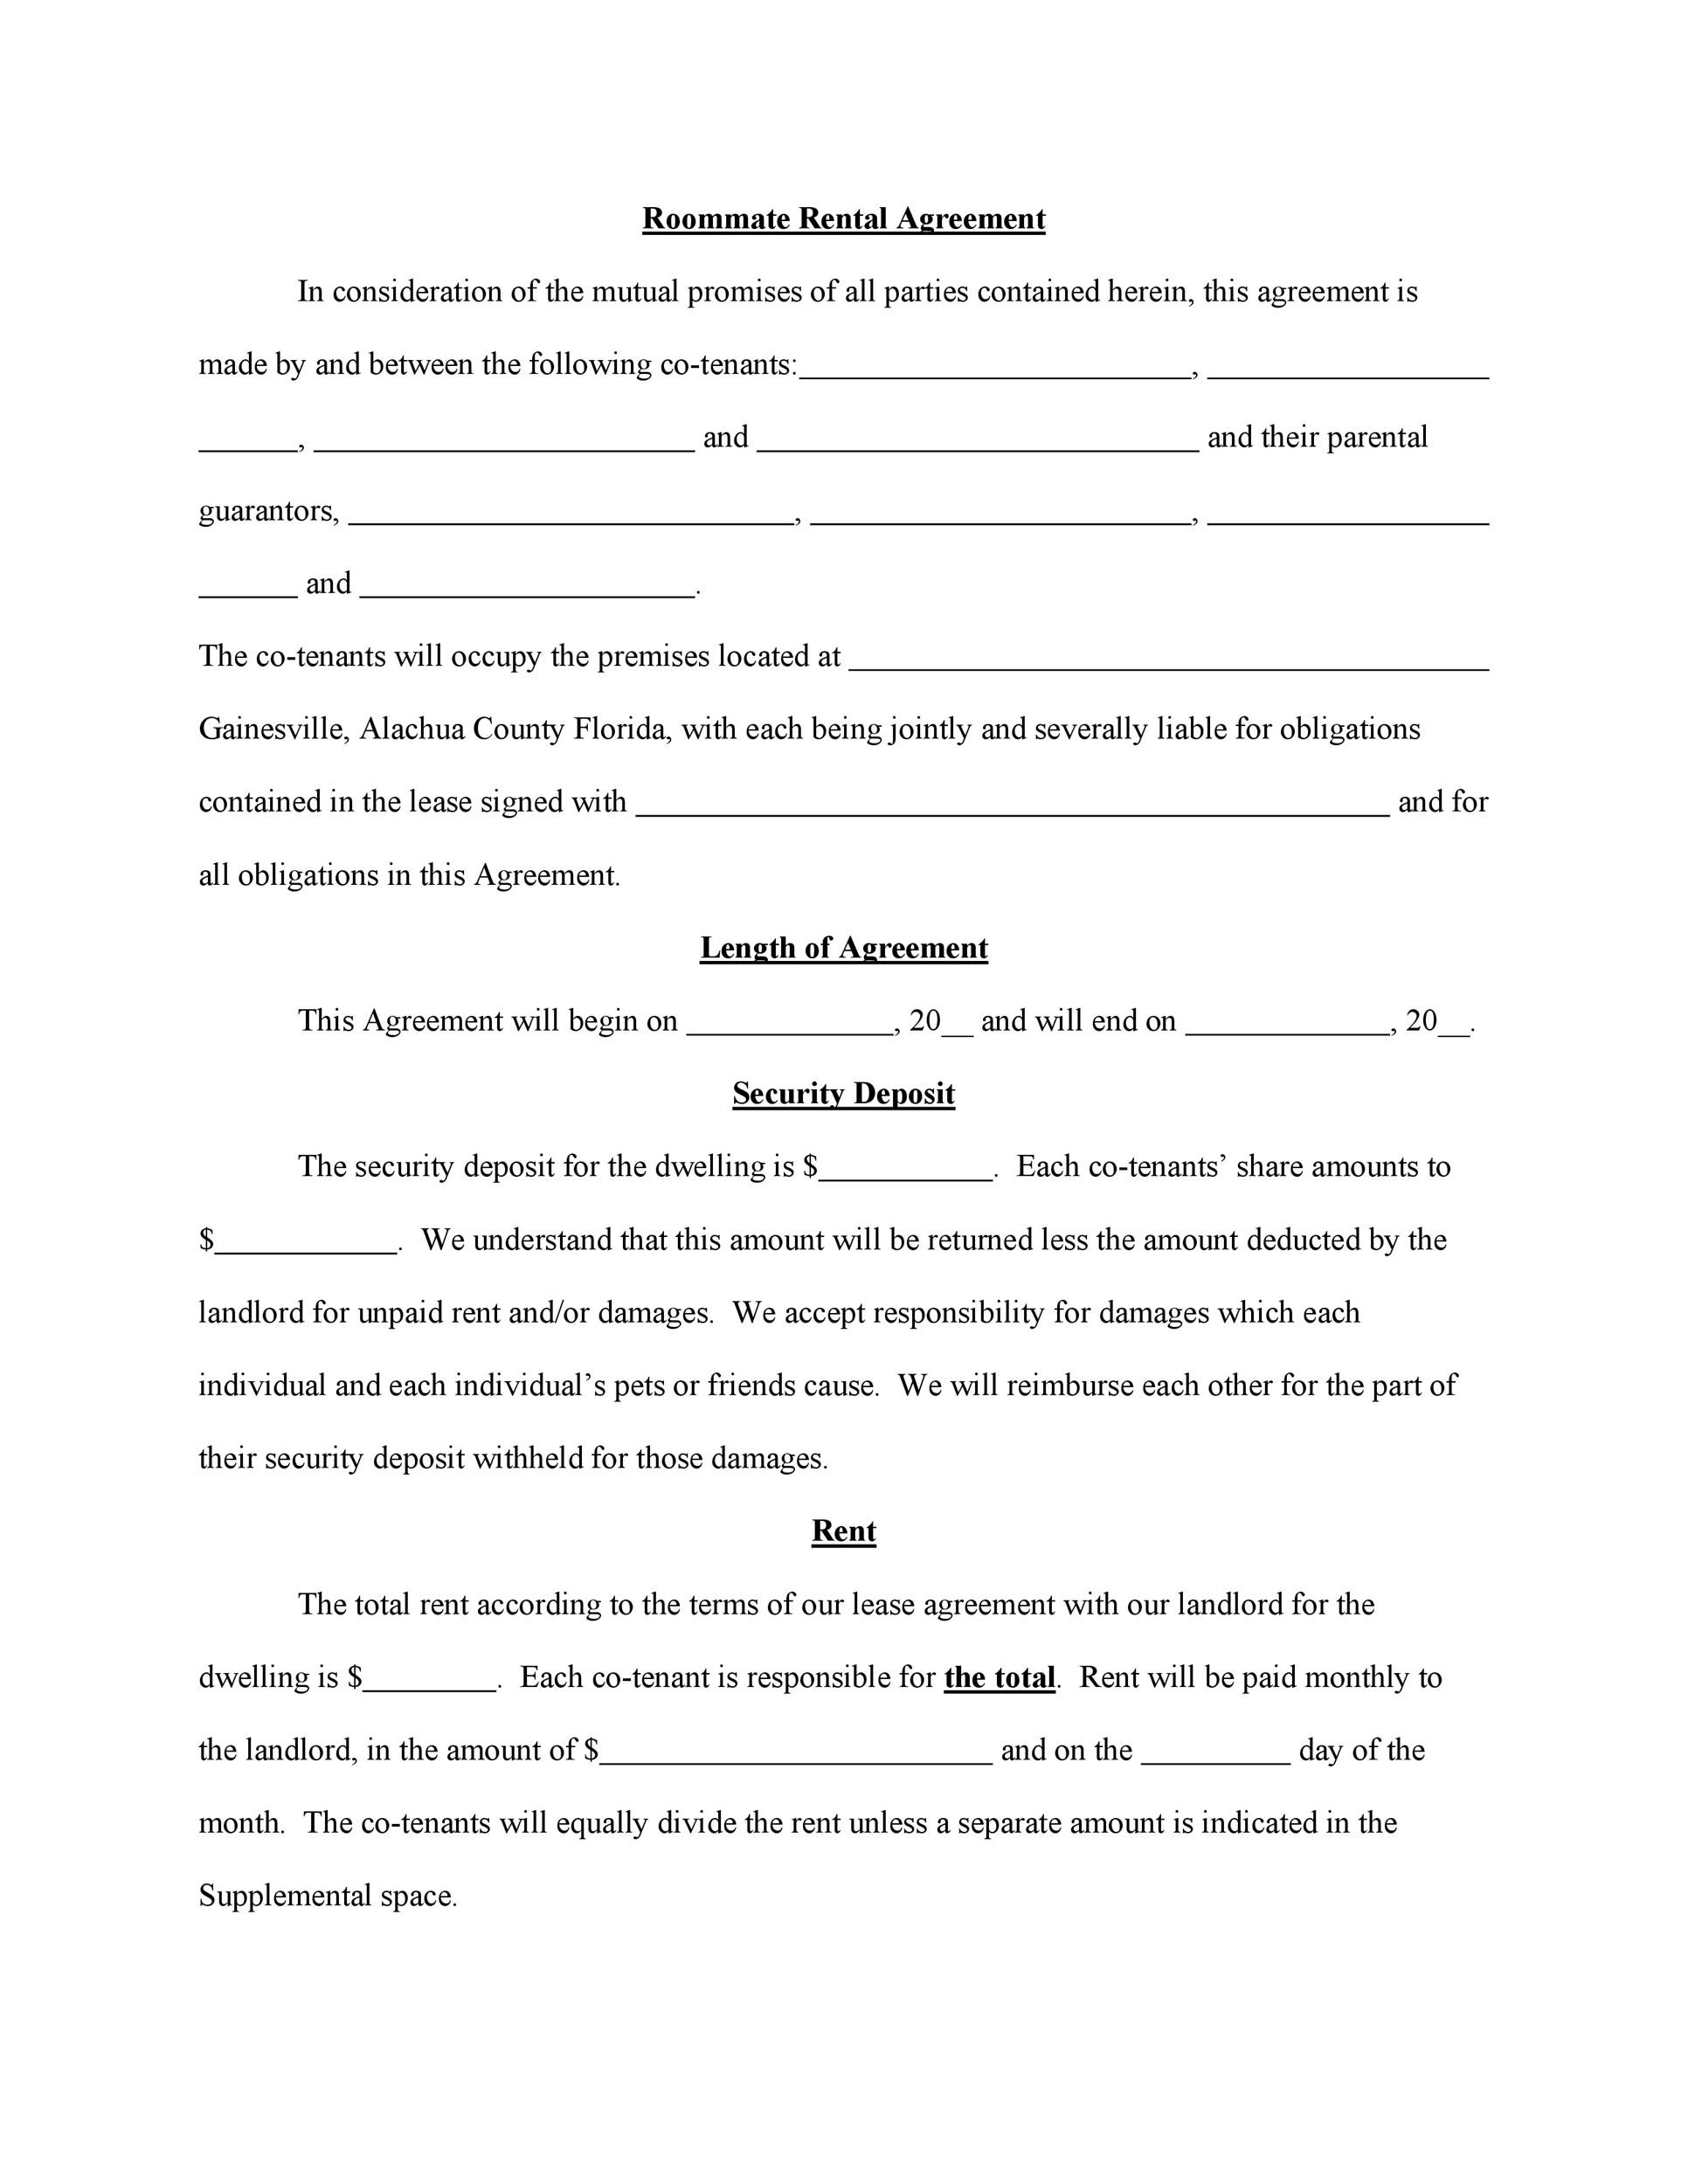 Free roommate agreement template 32